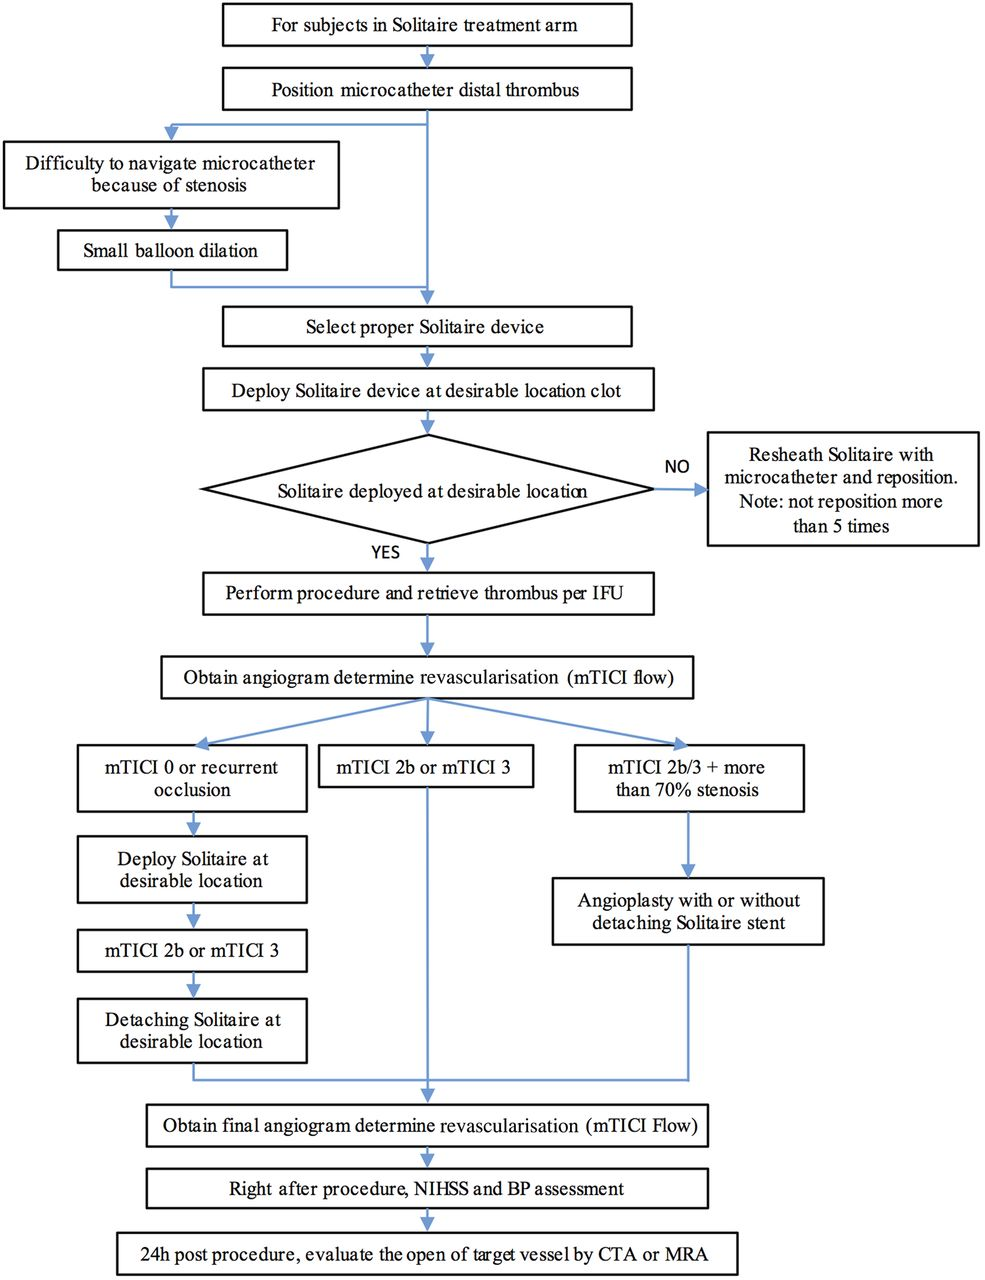 Endovascular therapy for Acute ischemic Stroke Trial (EAST